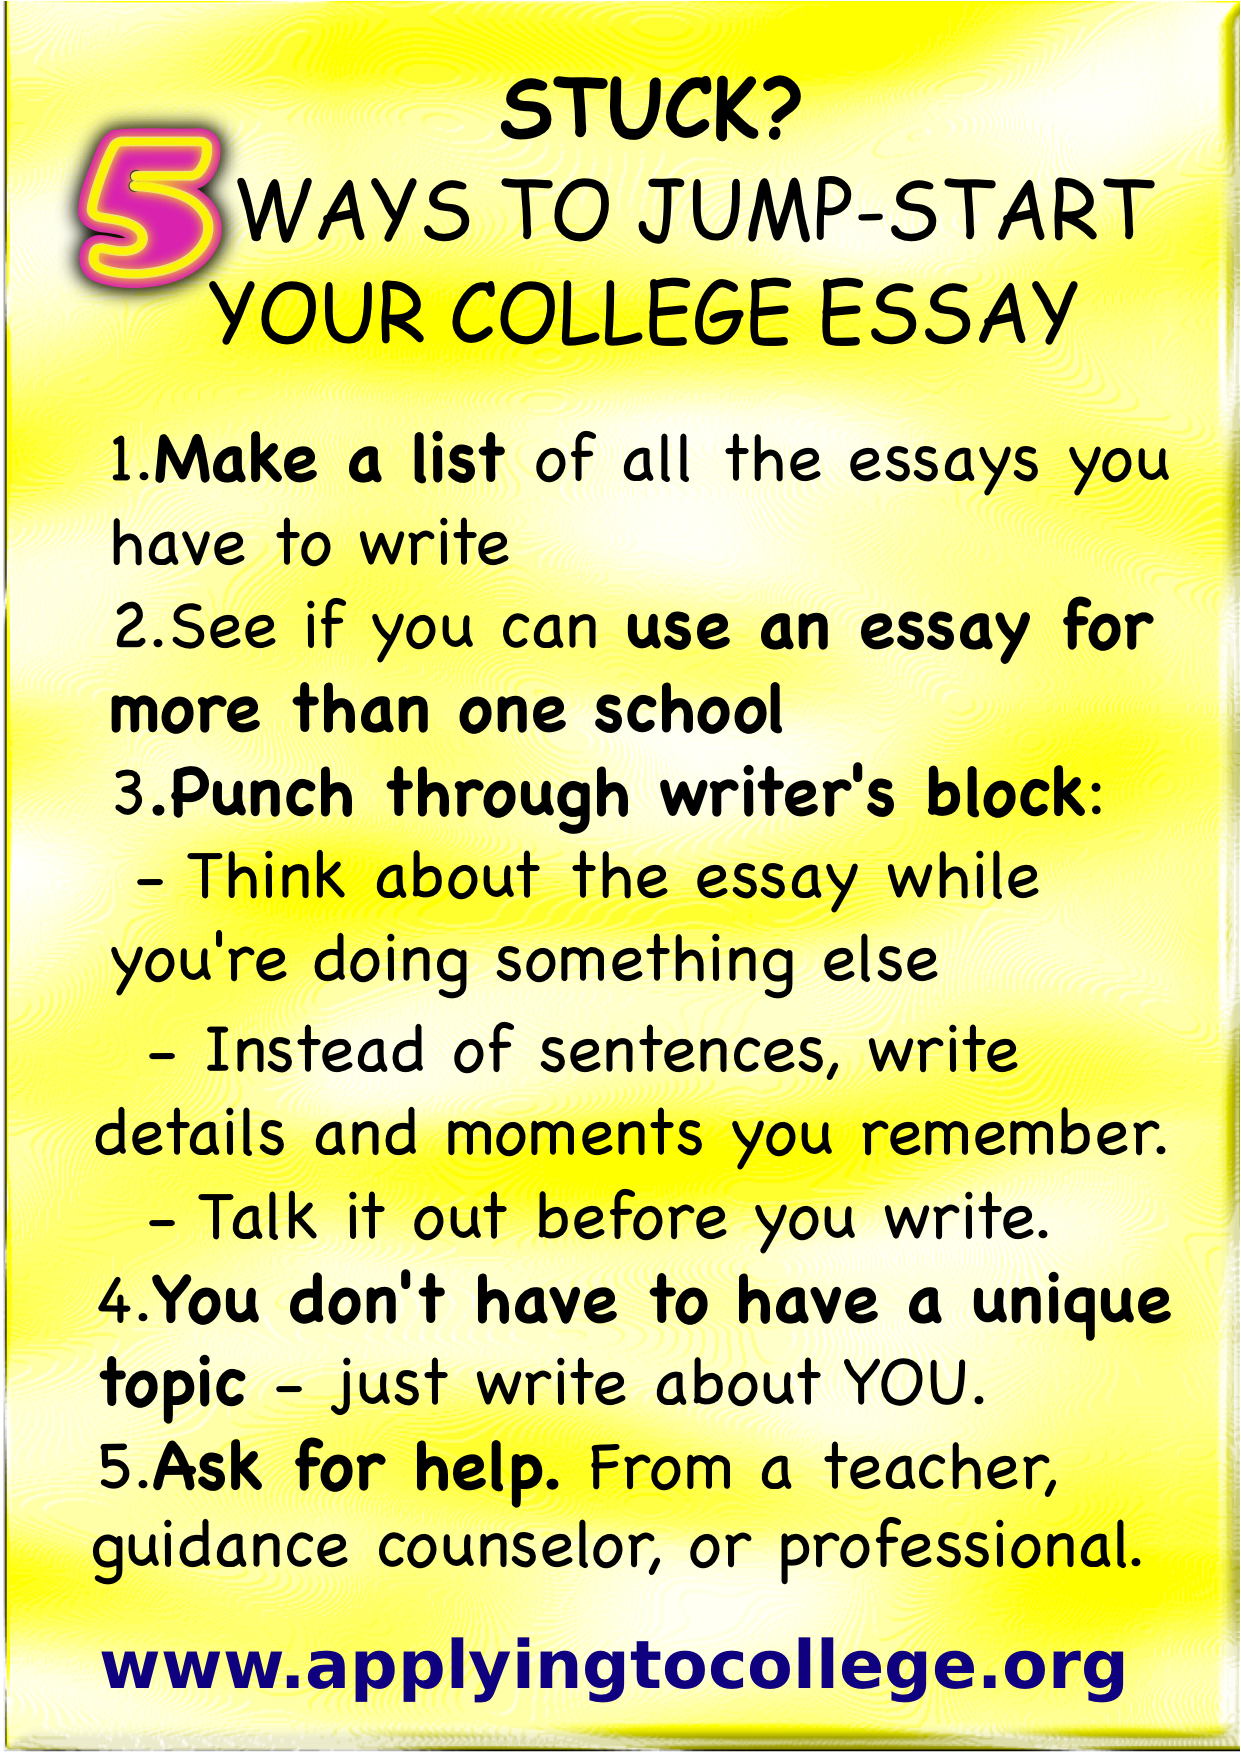 best ways to start off a college essay Contact robert at your best college essay to find out how he can help you write the college admissions essay that will get you noticed.